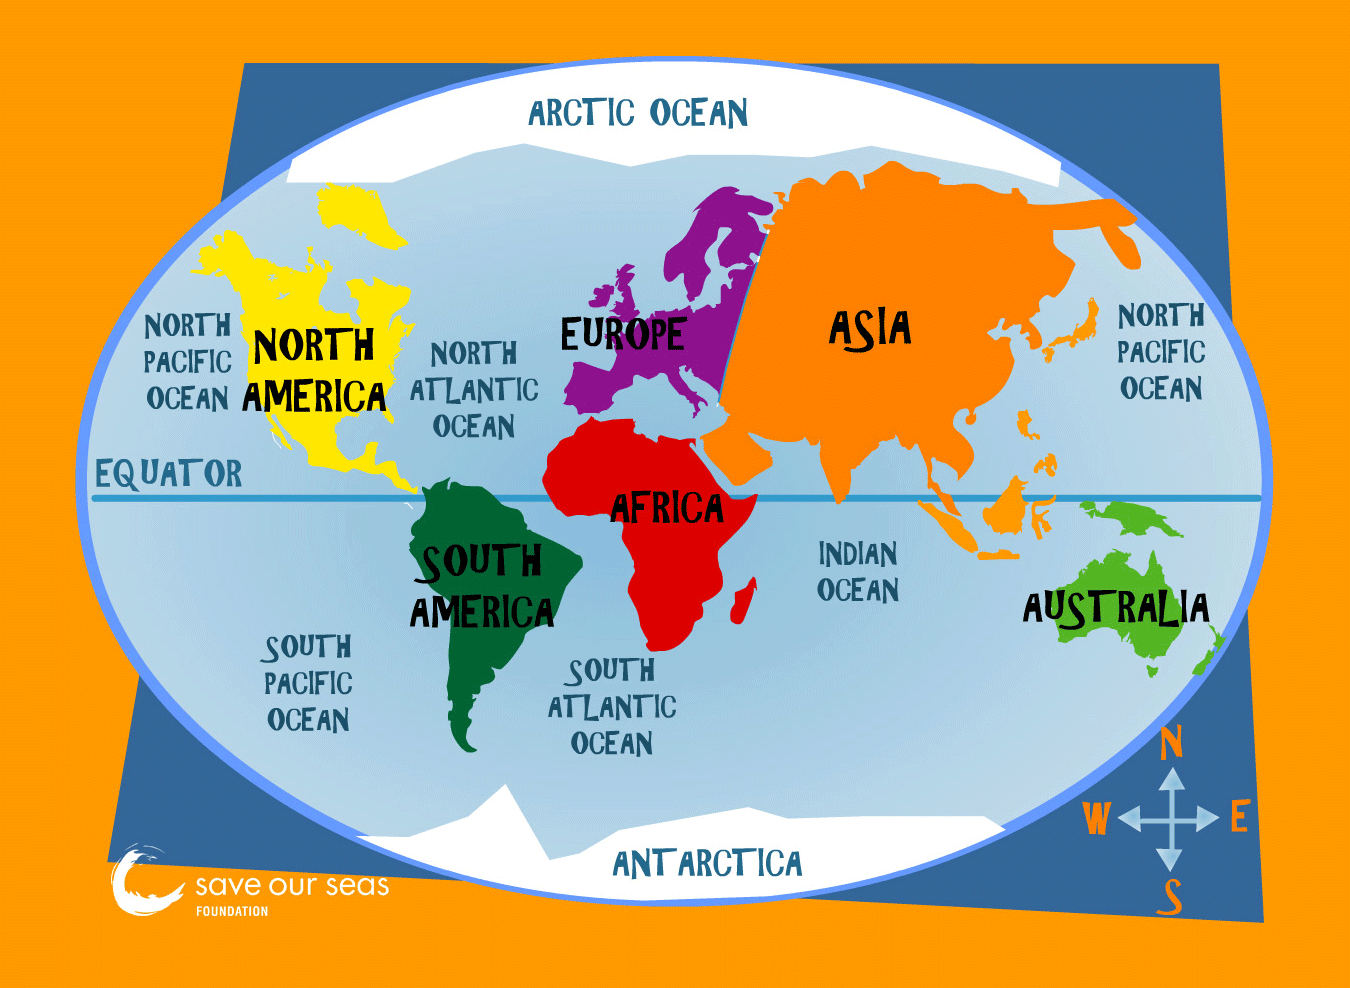 7 Continents Of The World 5majoroceans